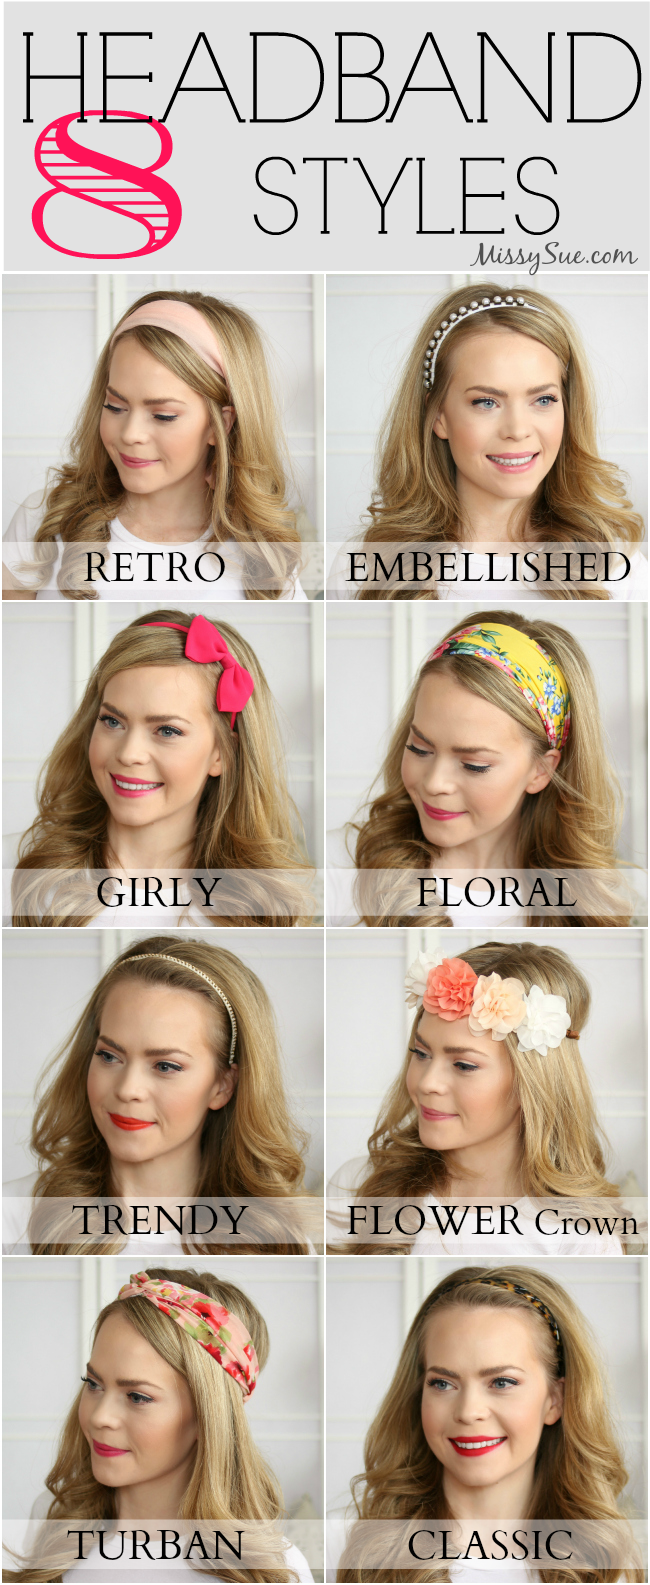 8 Headband Styles Womens World Headband Hairstyles Long Hair Headbandhairstyles 8 Headband Styles Wom Headband Hairstyles Long Hair Styles Headband Styles